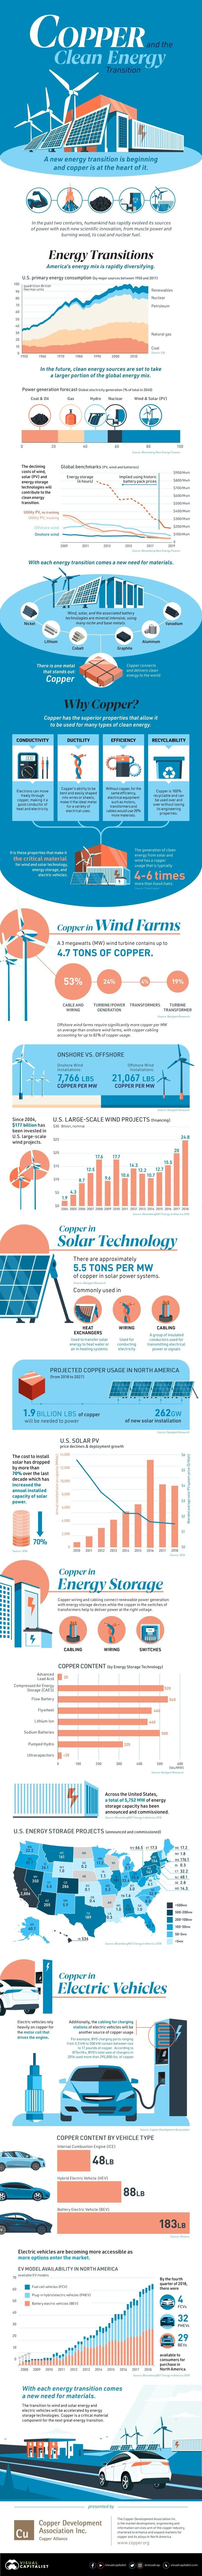 Visualizing Copper's Role in the Transition to Clean Energy #infographic